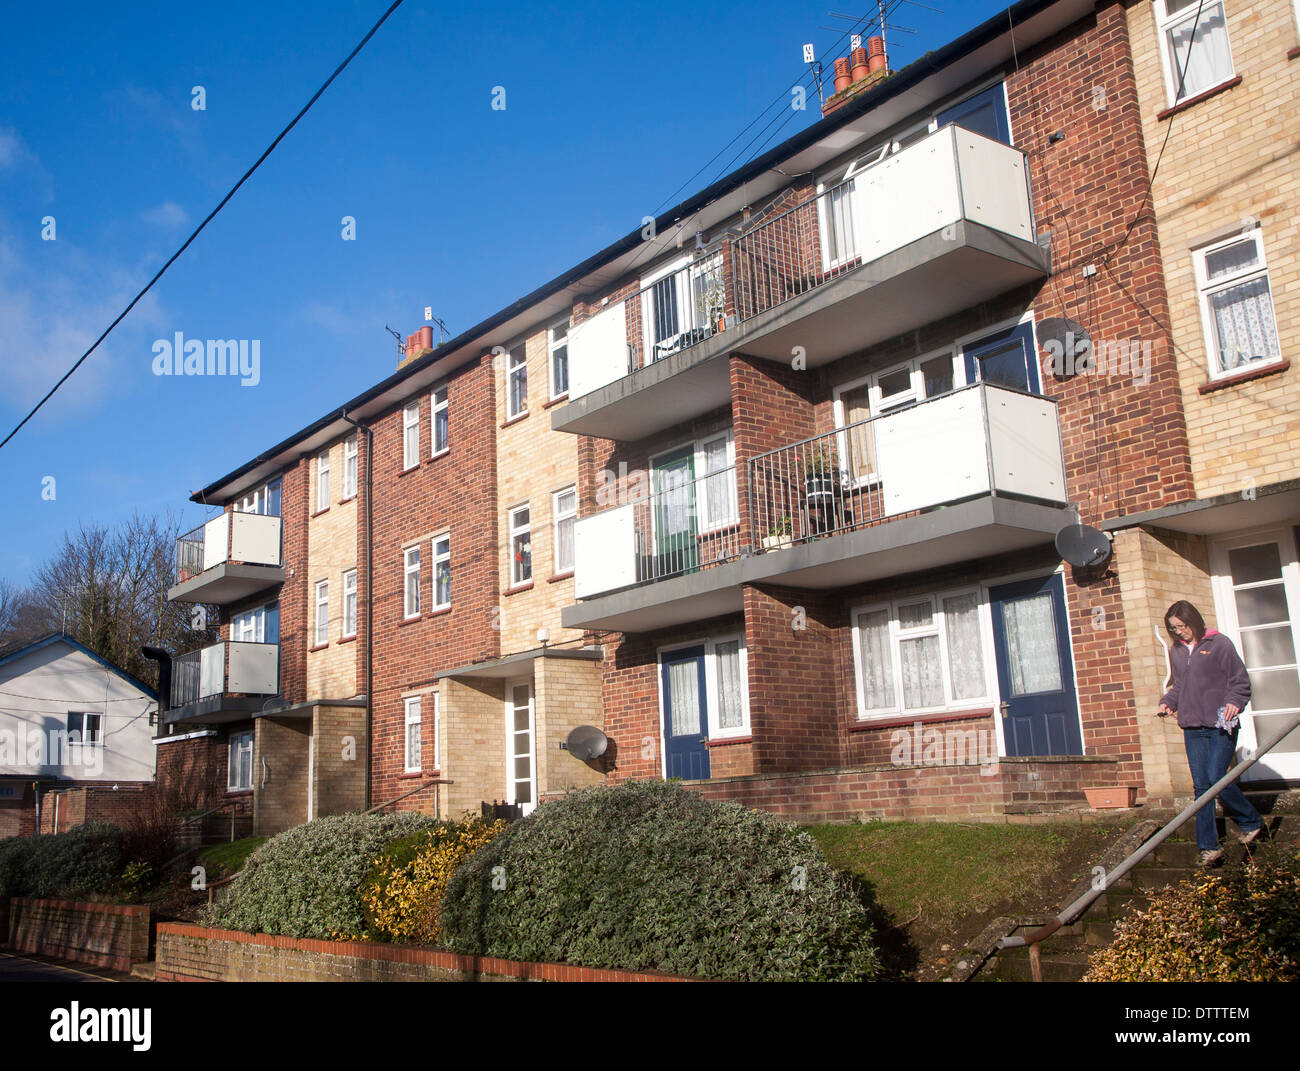 Local authority built former council flats housing in Woodbridge, Suffolk, England - Stock Image